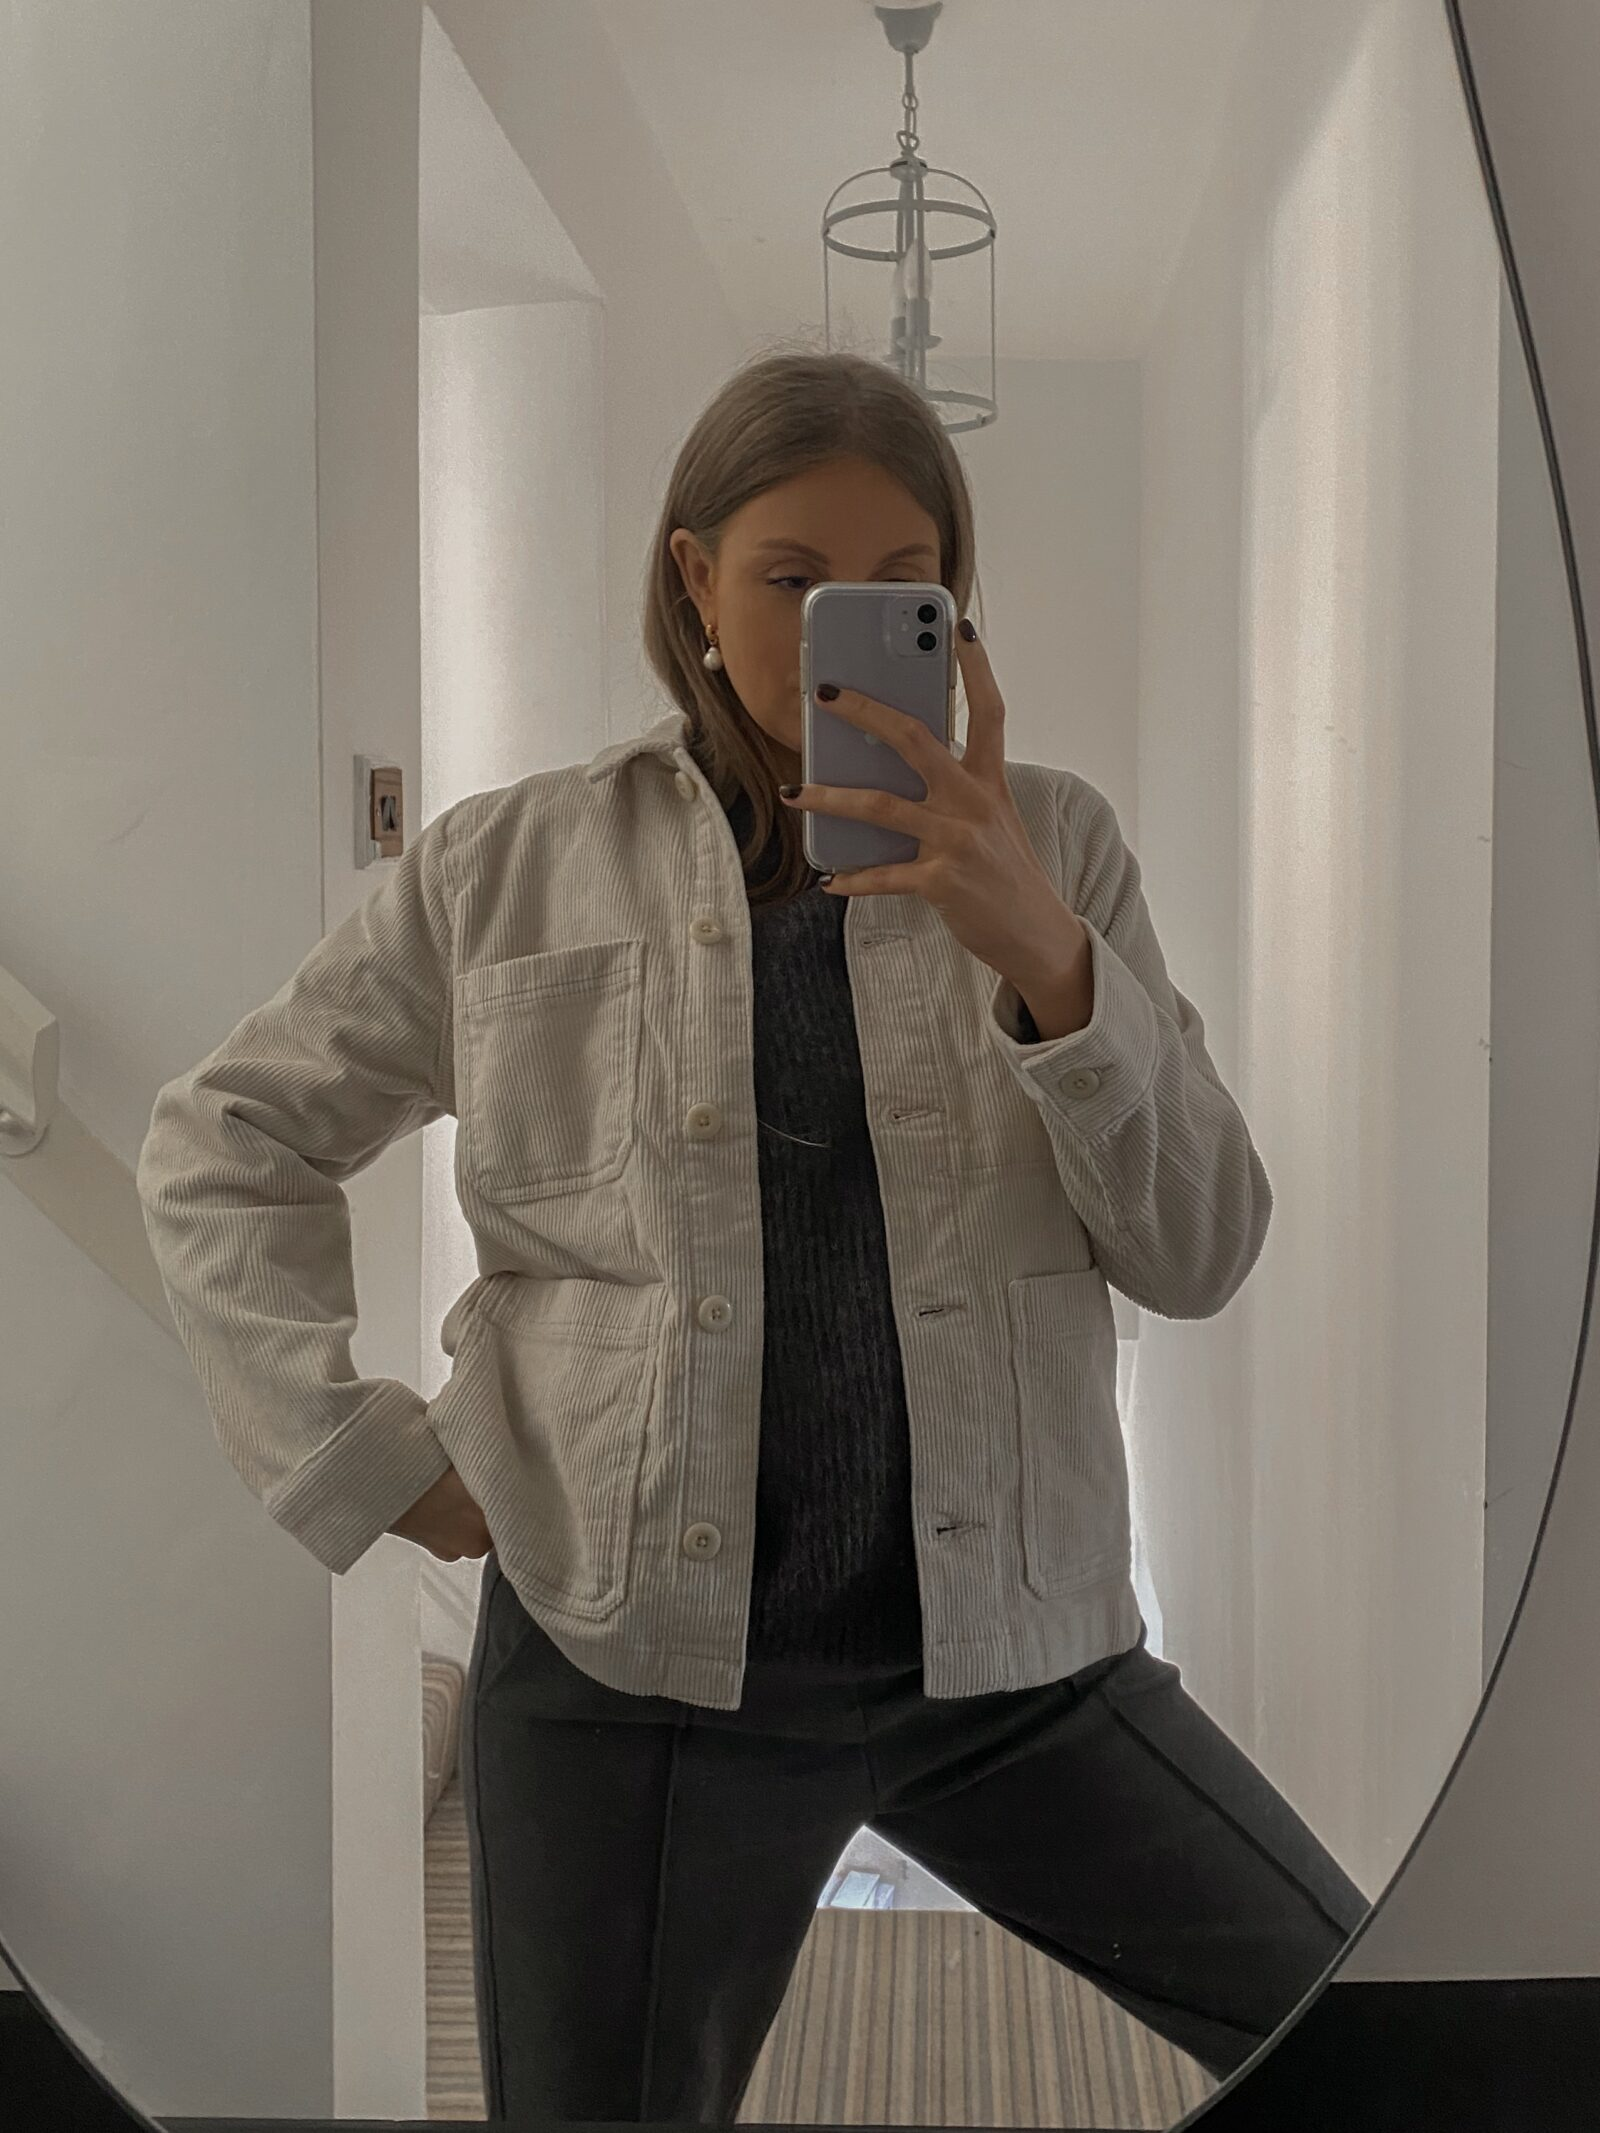 Winter Everlane Haul 2020 - Cream Shacket